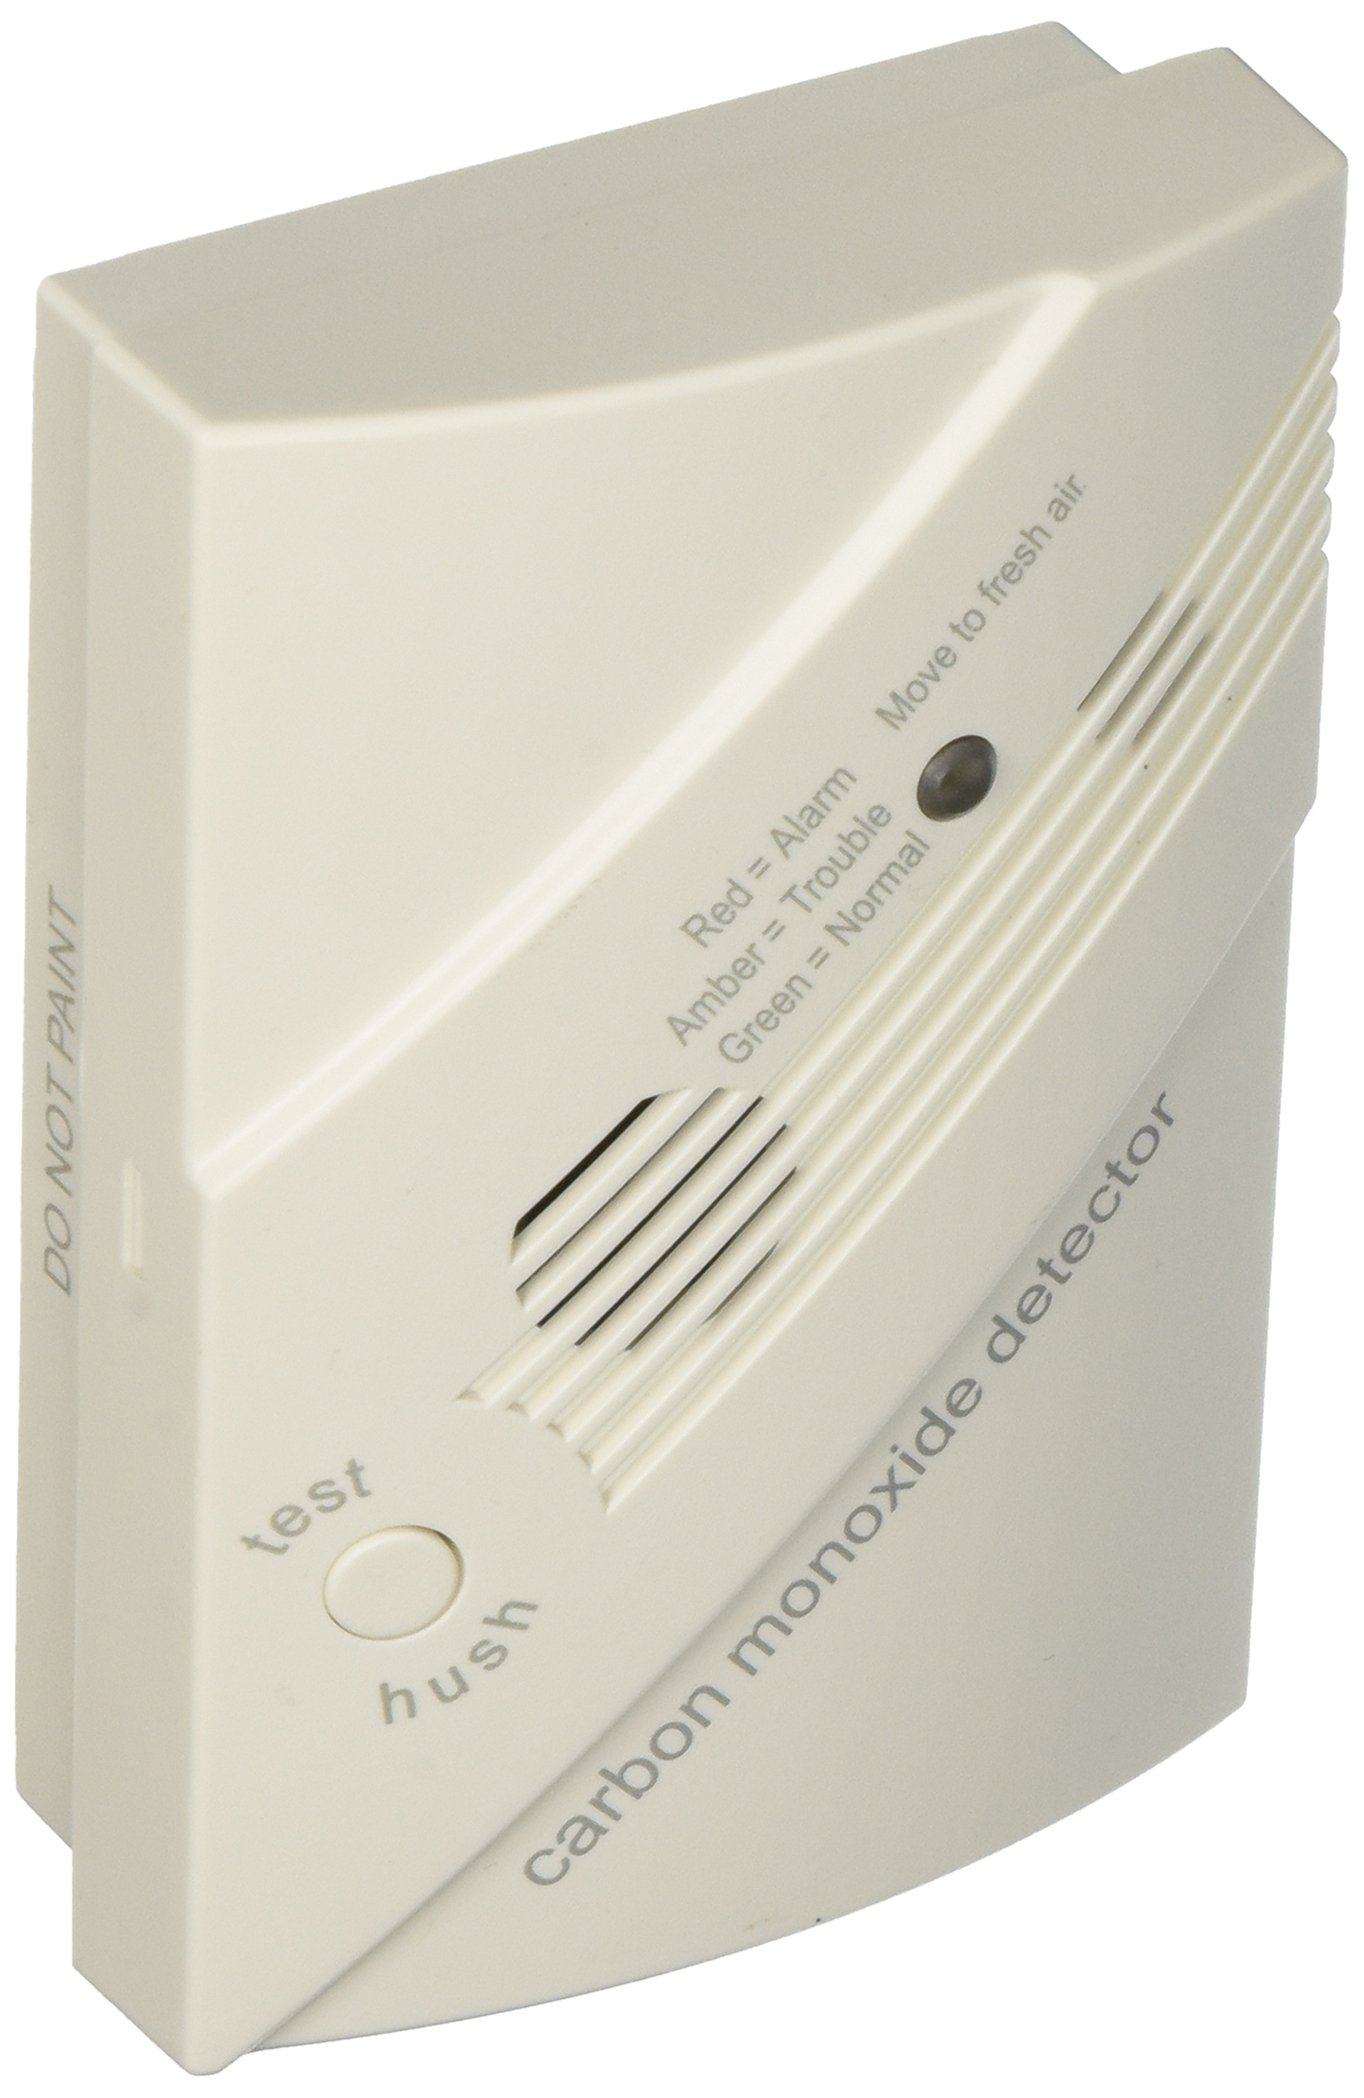 Edwards Signaling 260-CO, SAFEAIR, CO DETECTOR